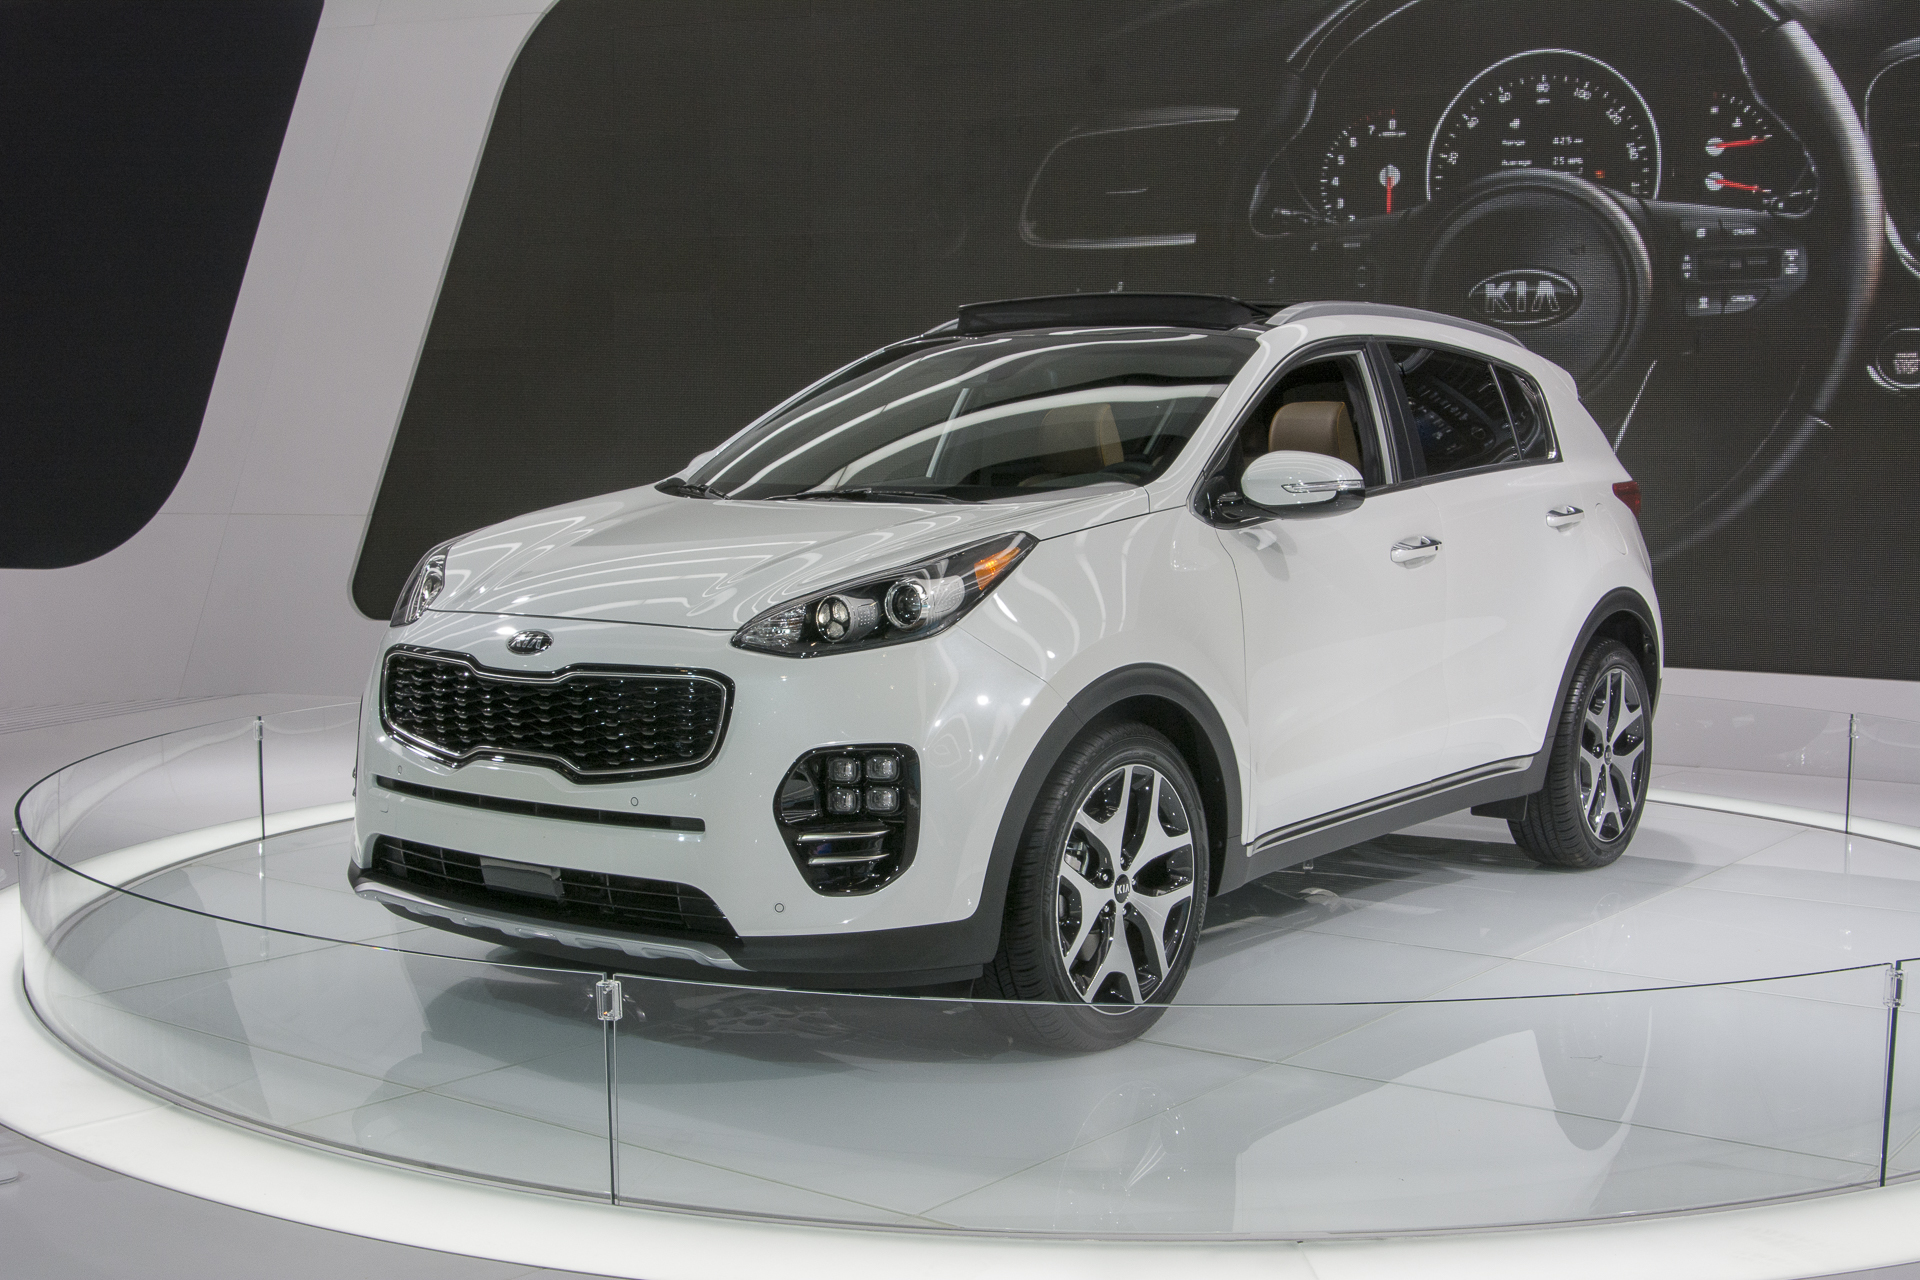 Kia Sportage Trailer Wiring Harness 2013 2012 Reviews And Rating Motor Trend 2017 Rh Militaryhummers Info